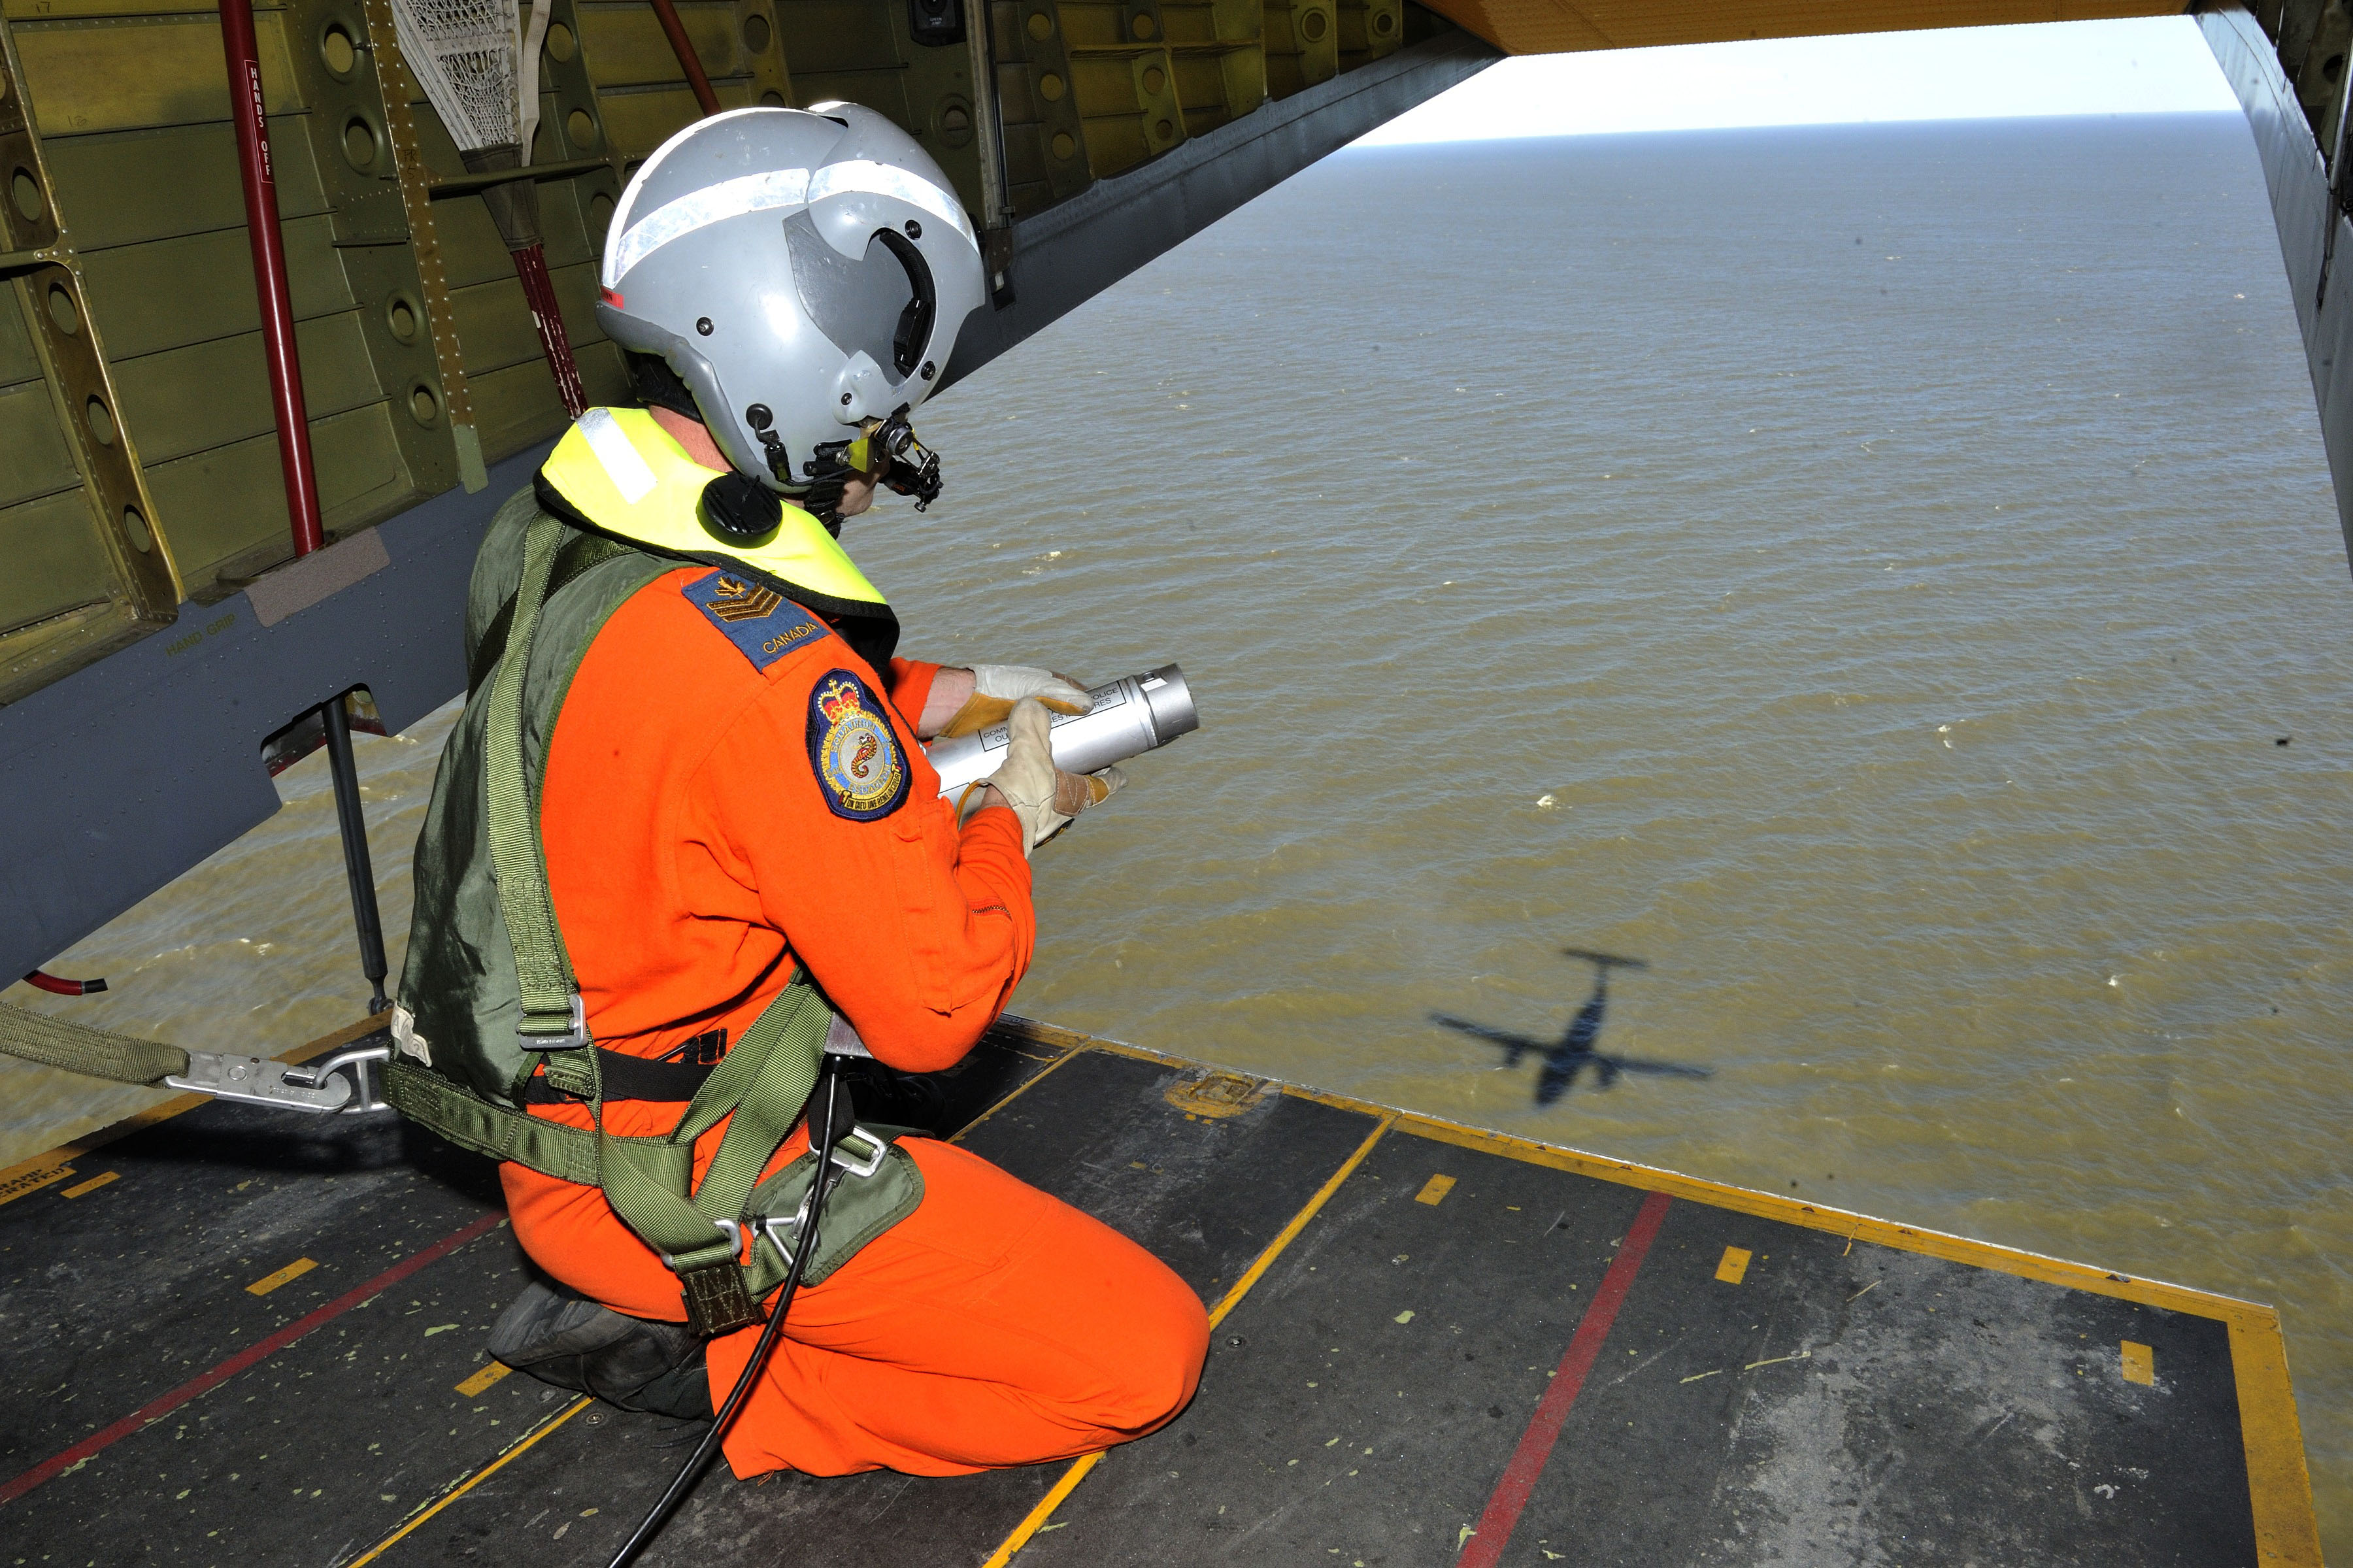 A man wearing an orange jump suit and a grey helmet holding a grey canister kneels on the open ramp of an aircraft flying over water.